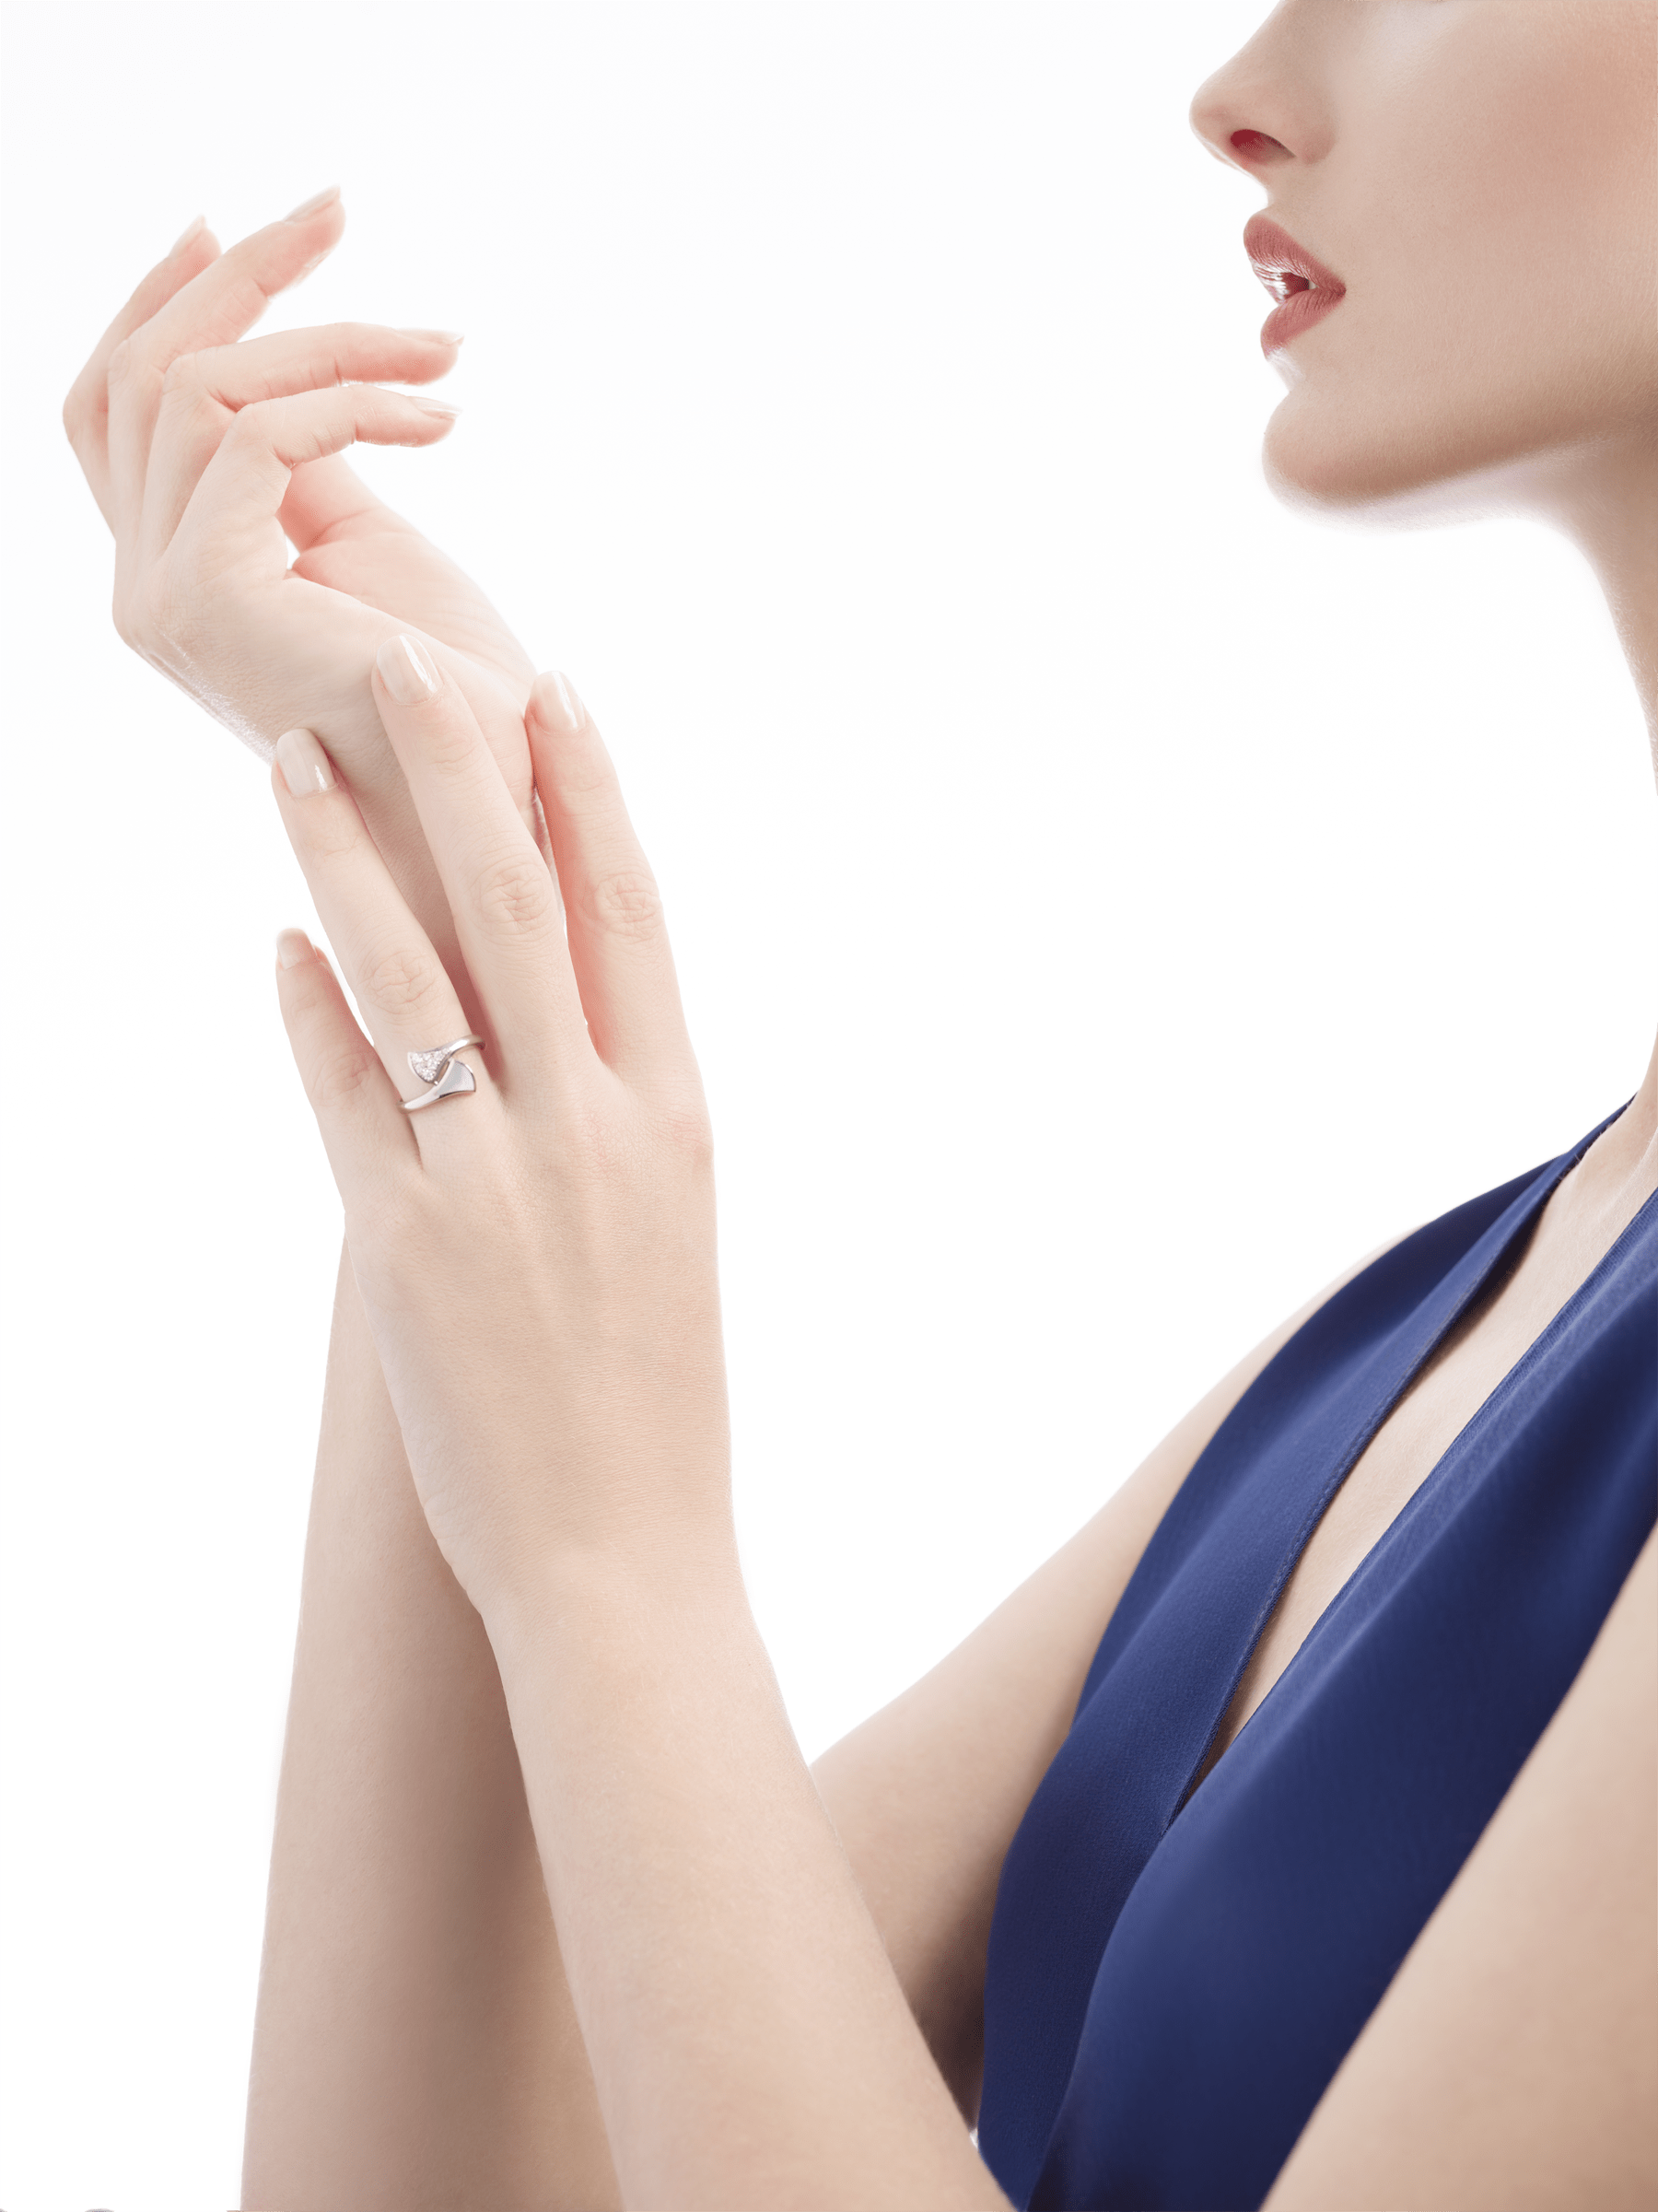 DIVAS' DREAM small contraire ring in 18 kt white gold, set with mother-of-pearl and pavé diamonds (0.10 ct). AN858004 image 4